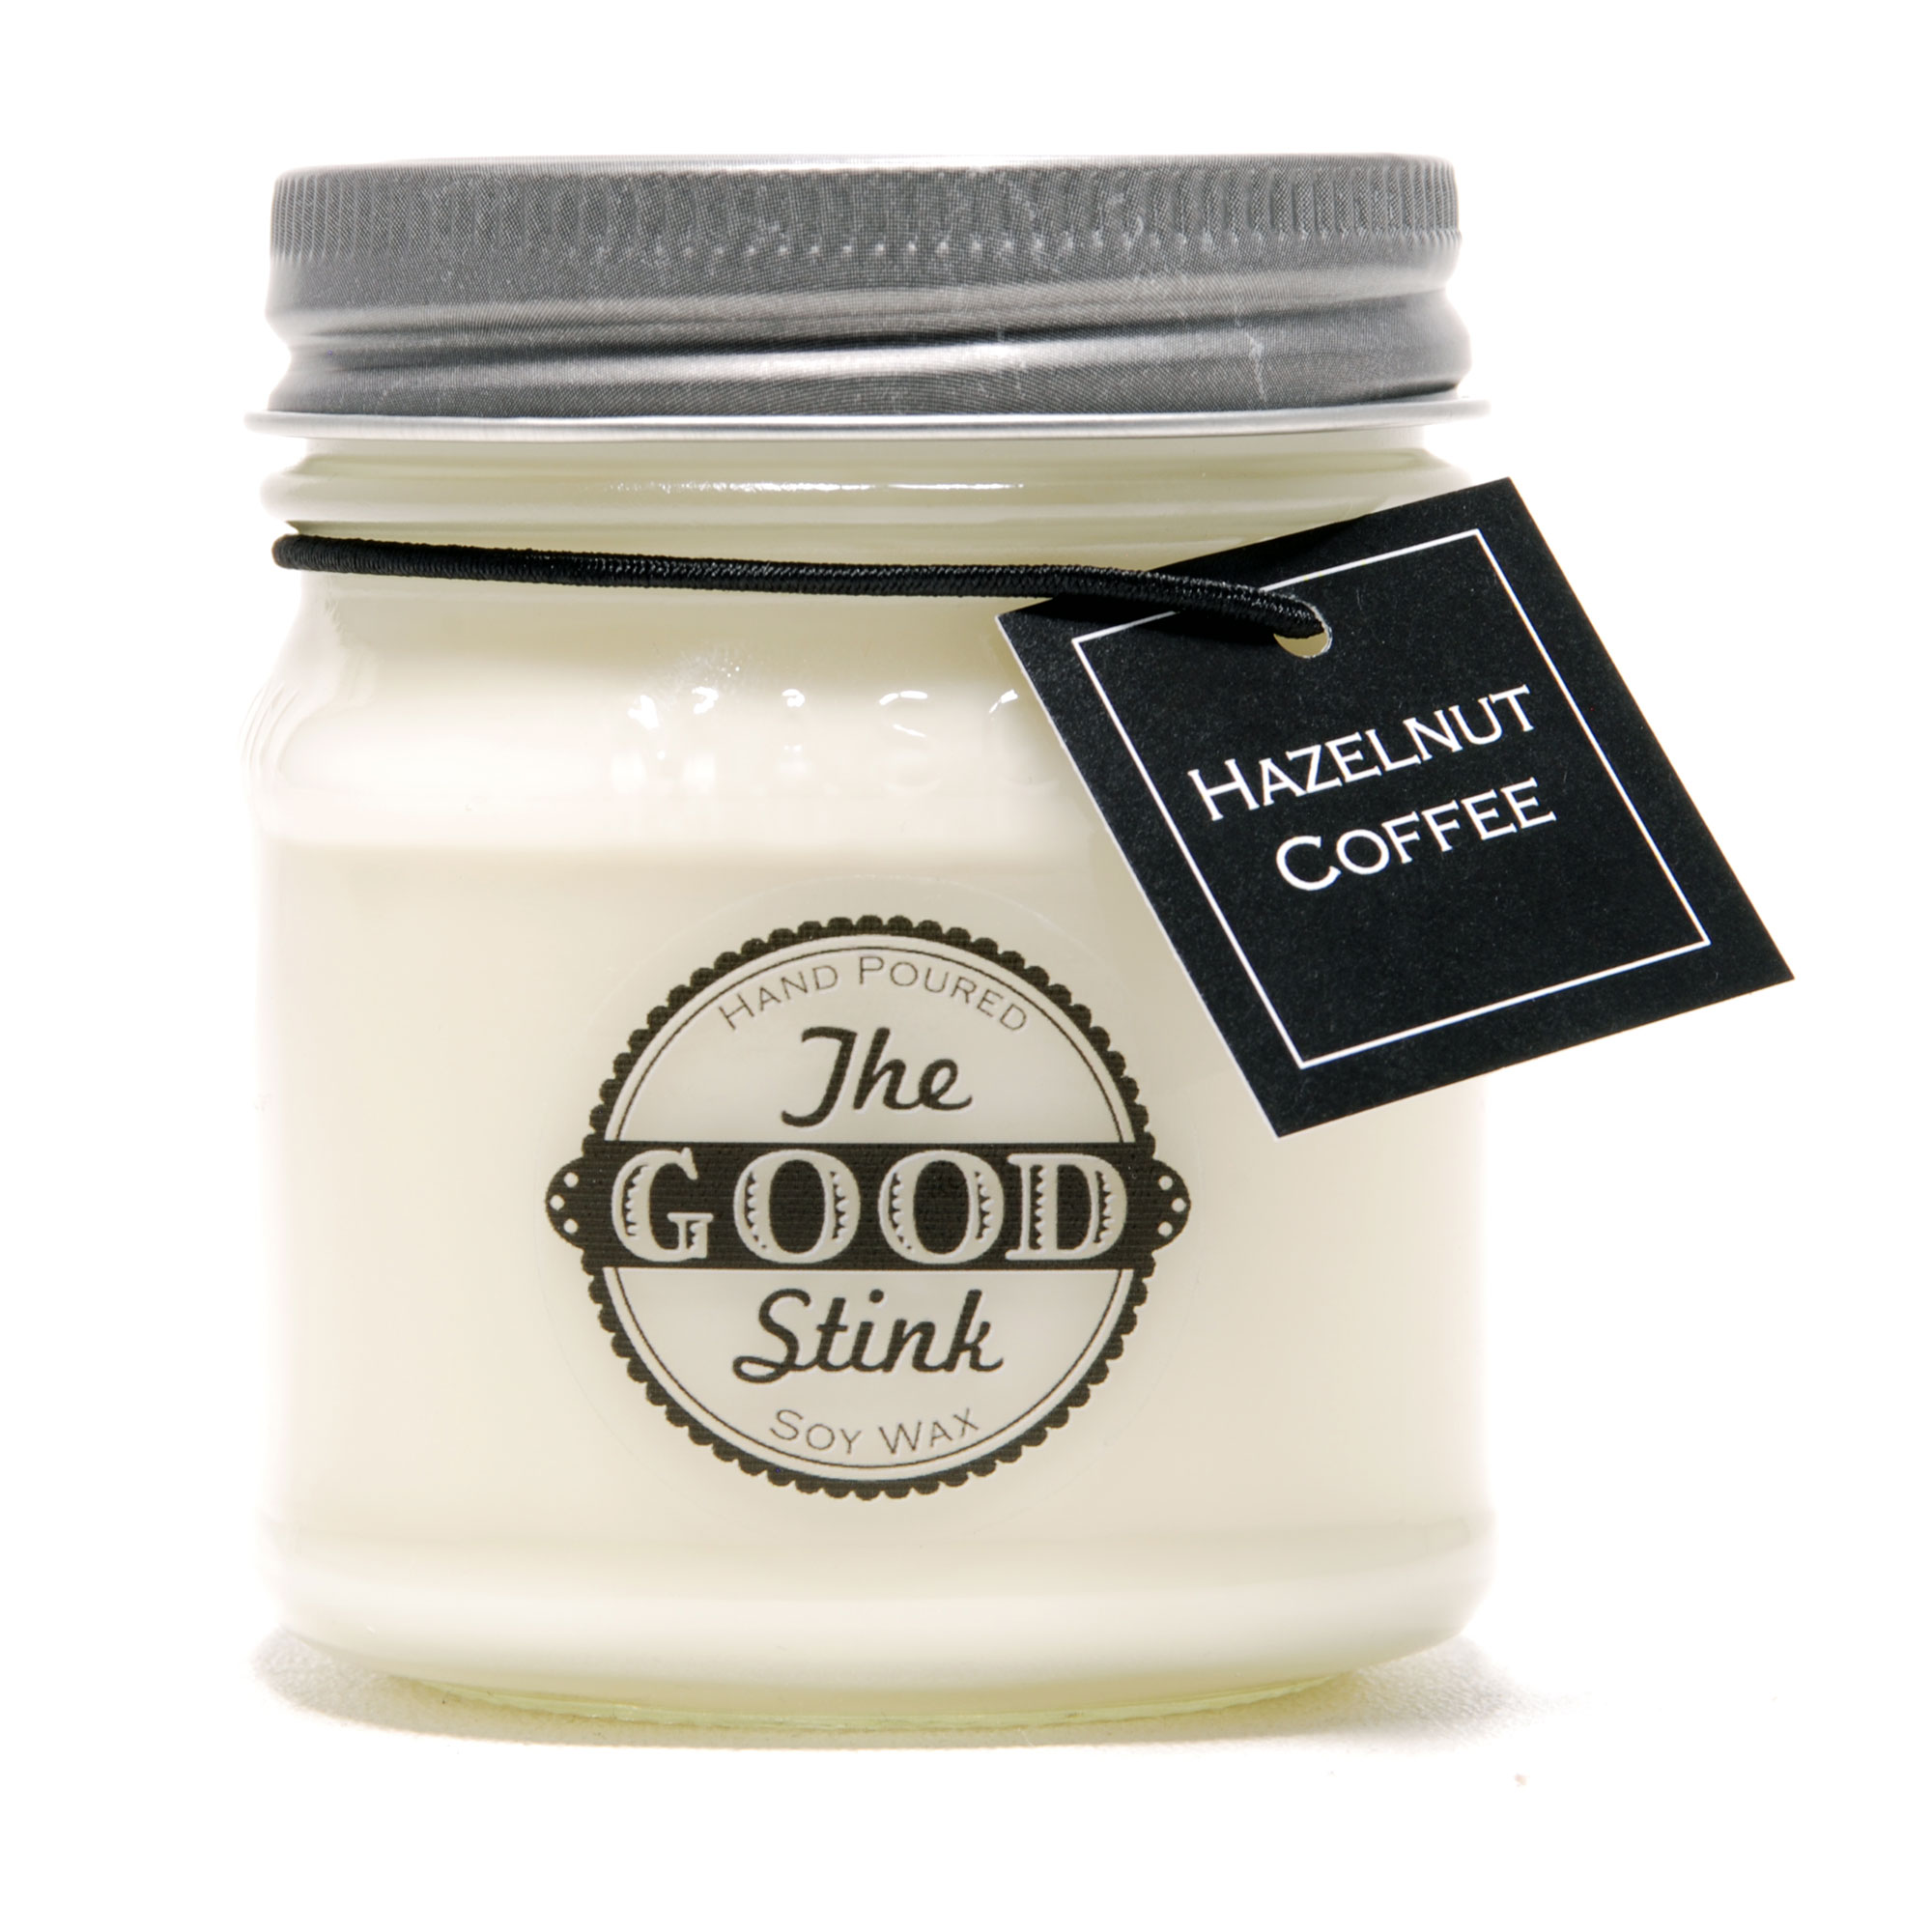 Soy Candle - Hazelnut Coffee - The Good Stink Original Stinker